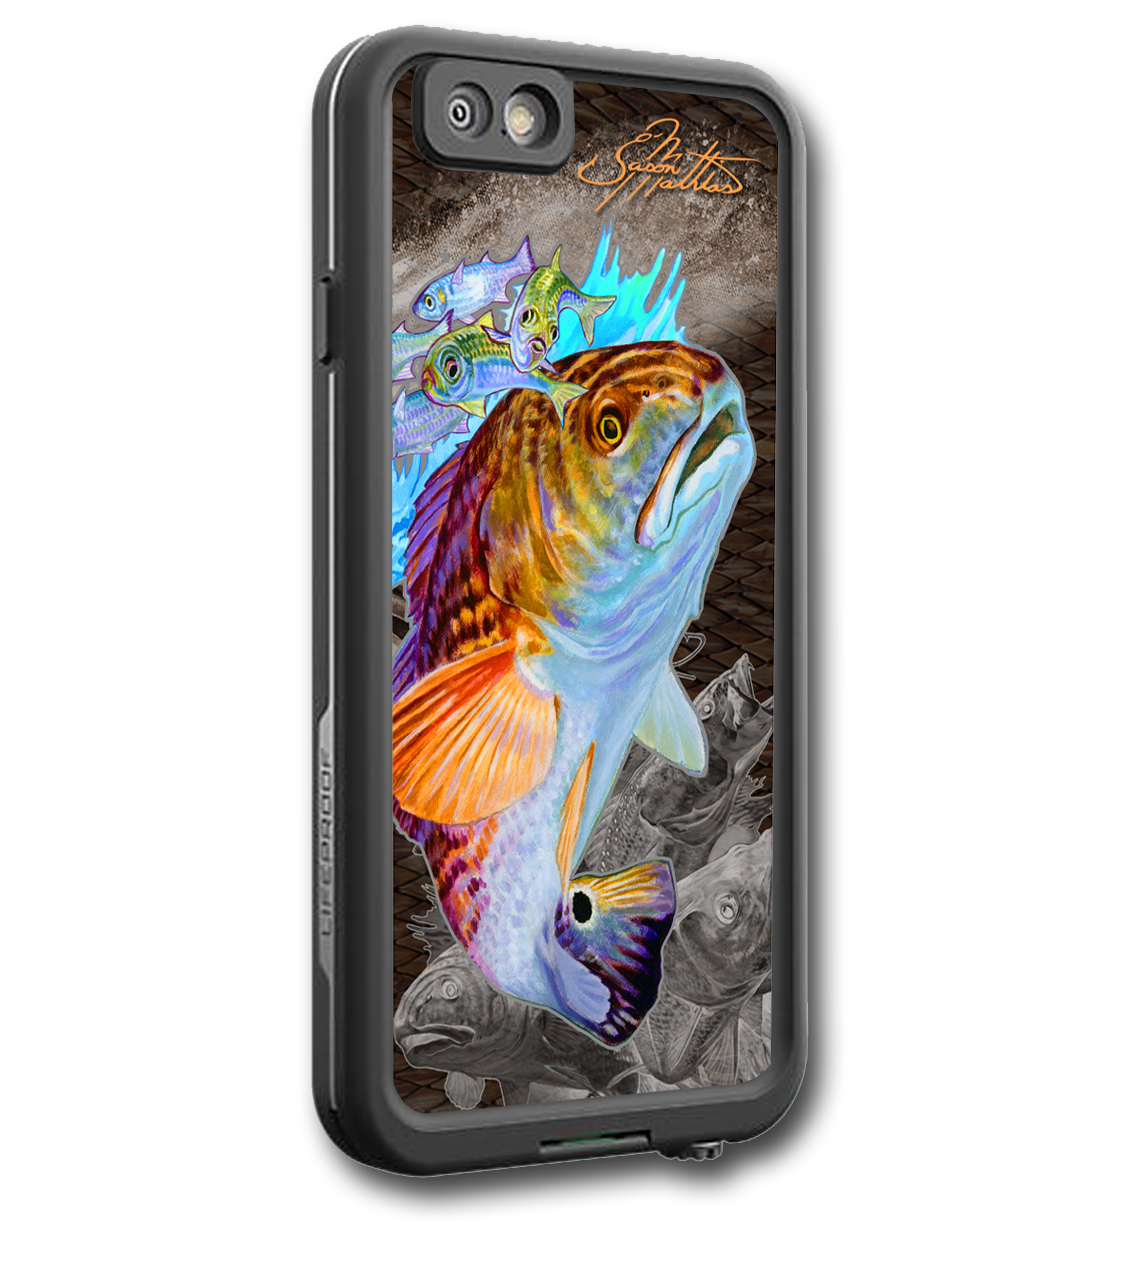 Iphone 7 fine art lifeproof skin by artist jason mathias carry around this